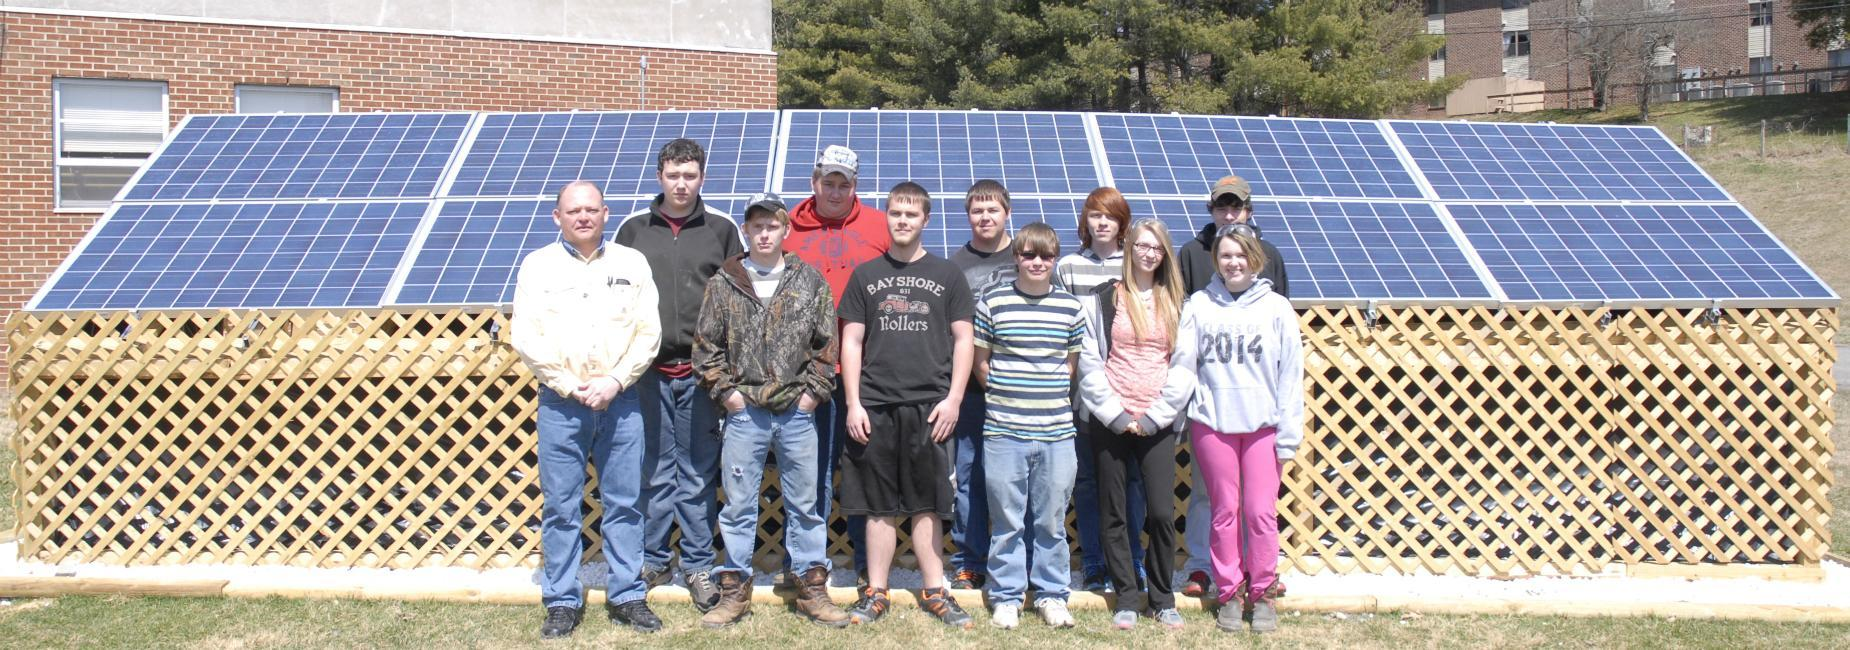 Electronics/electricity students posing in front of Career Center's solar panel array